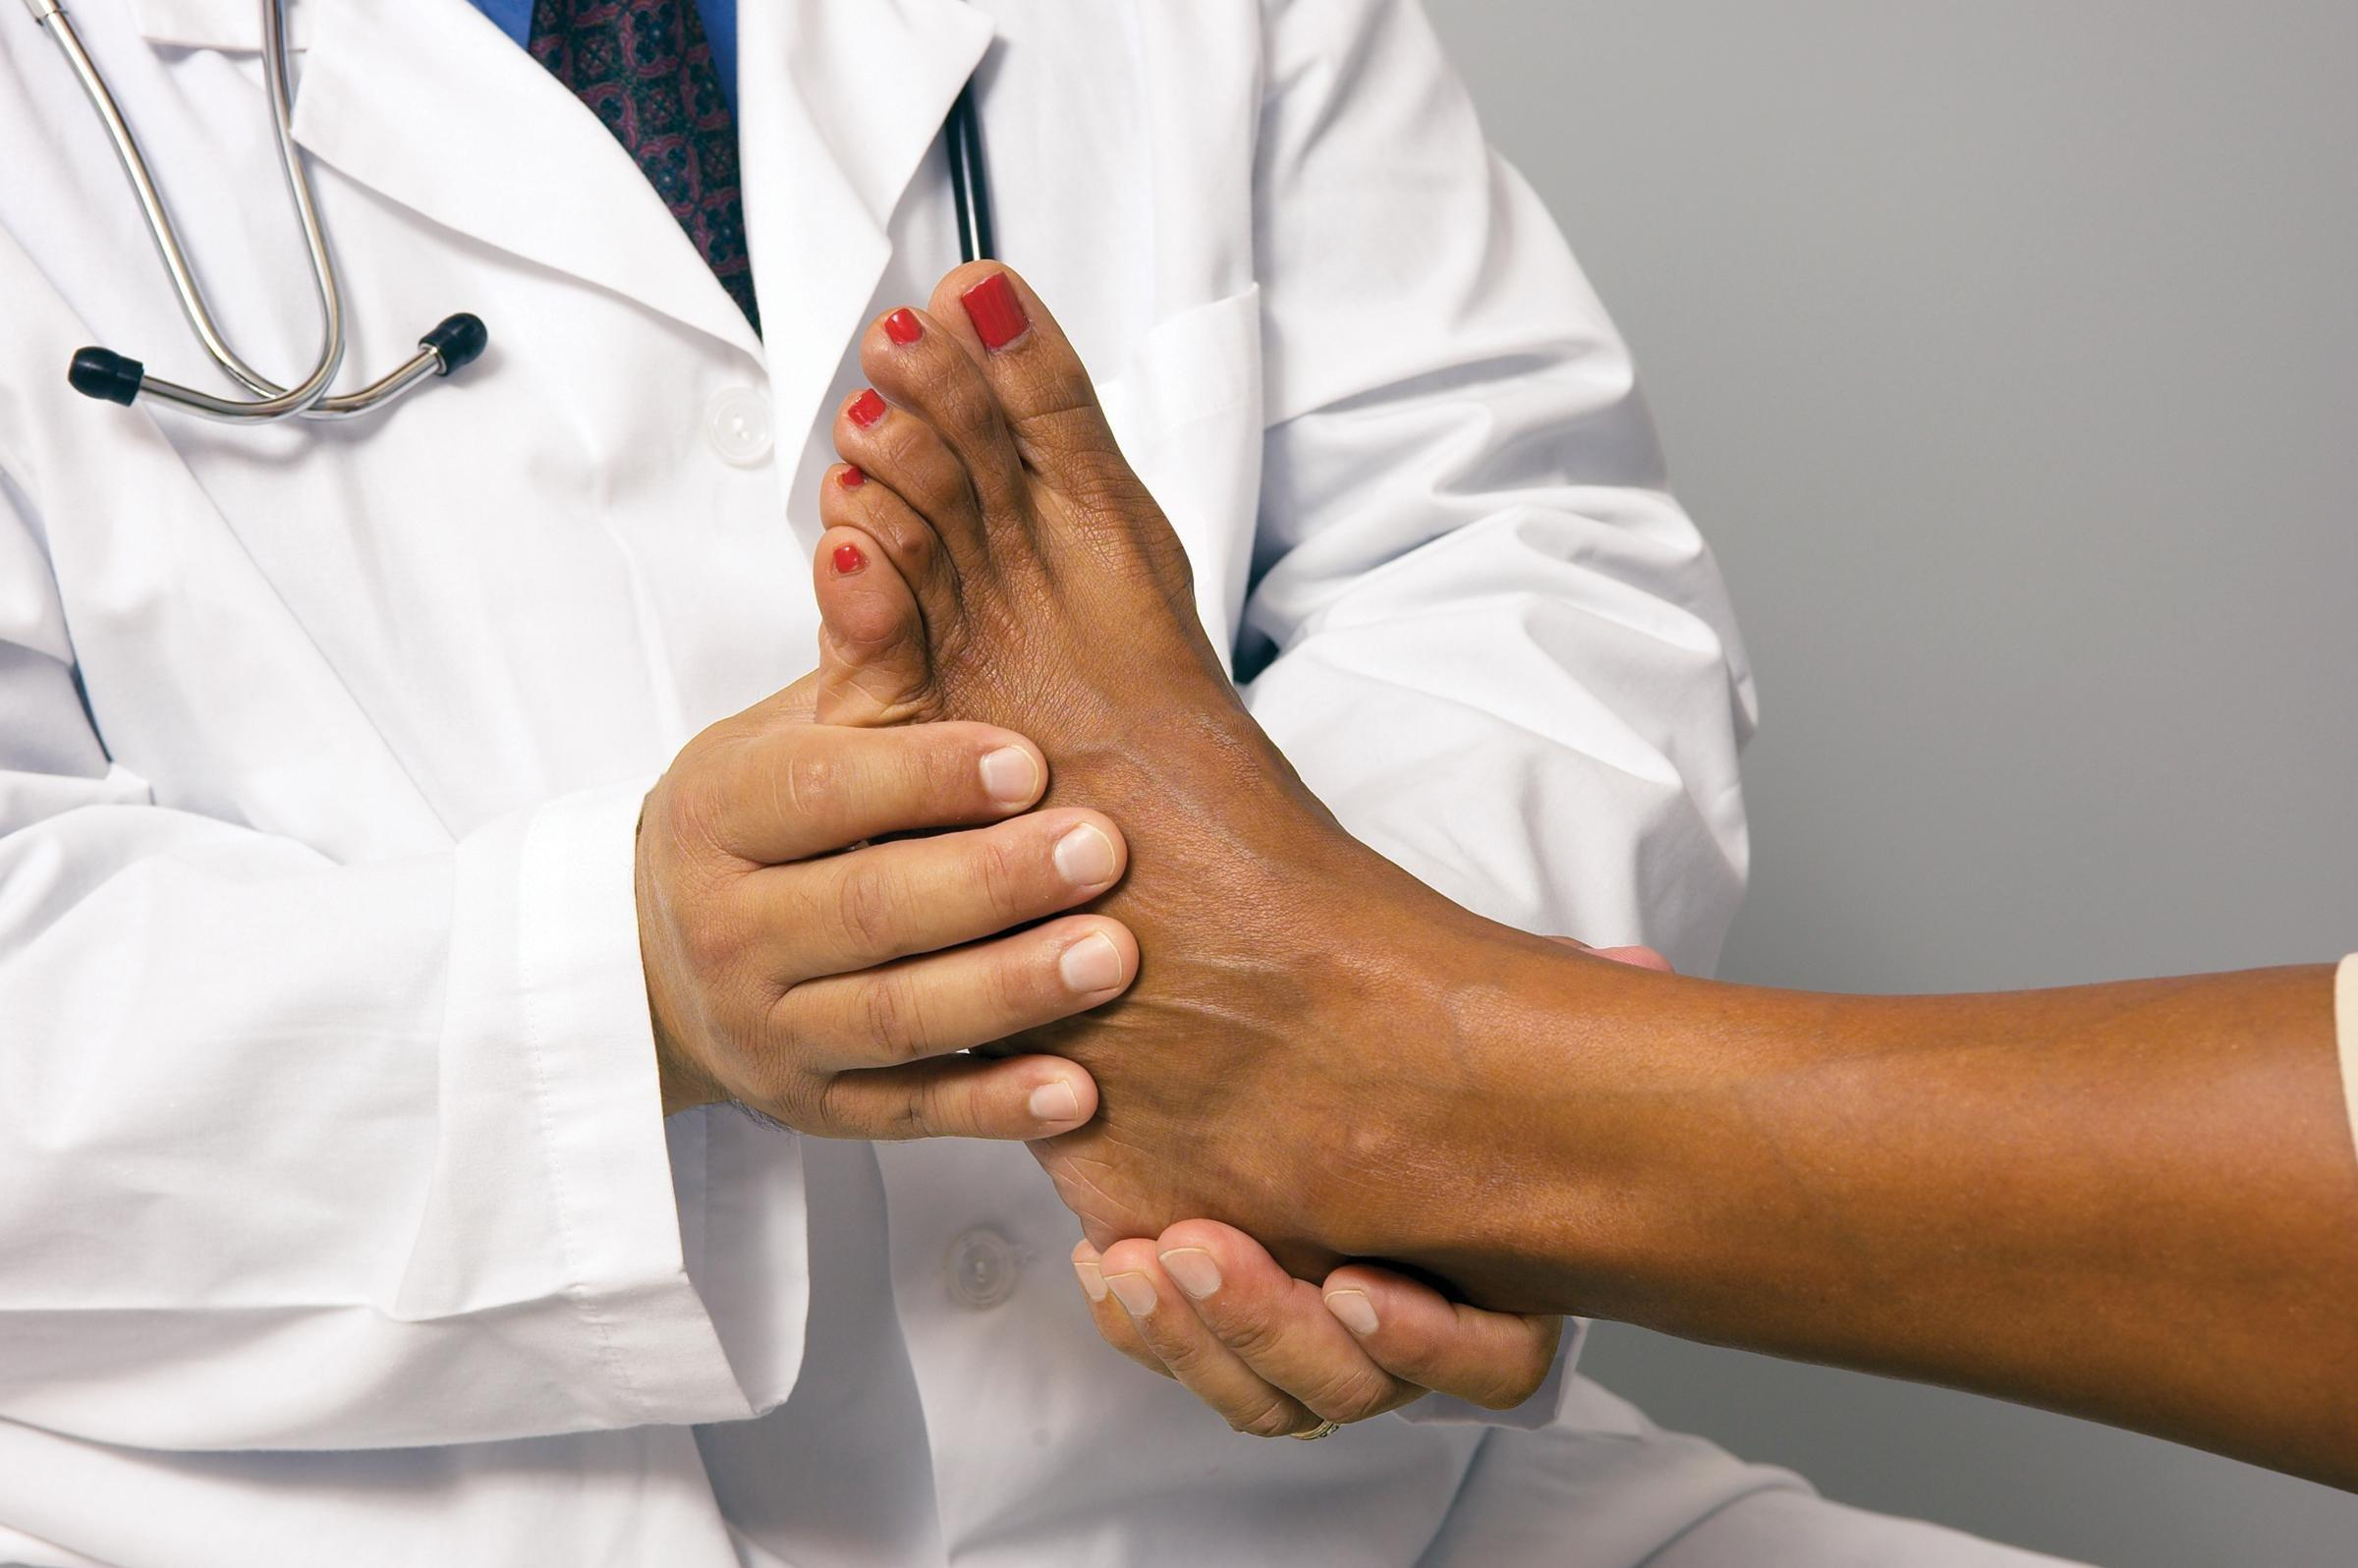 Why Do You Have To Have Your Feet Checked When You Have Diabetes?